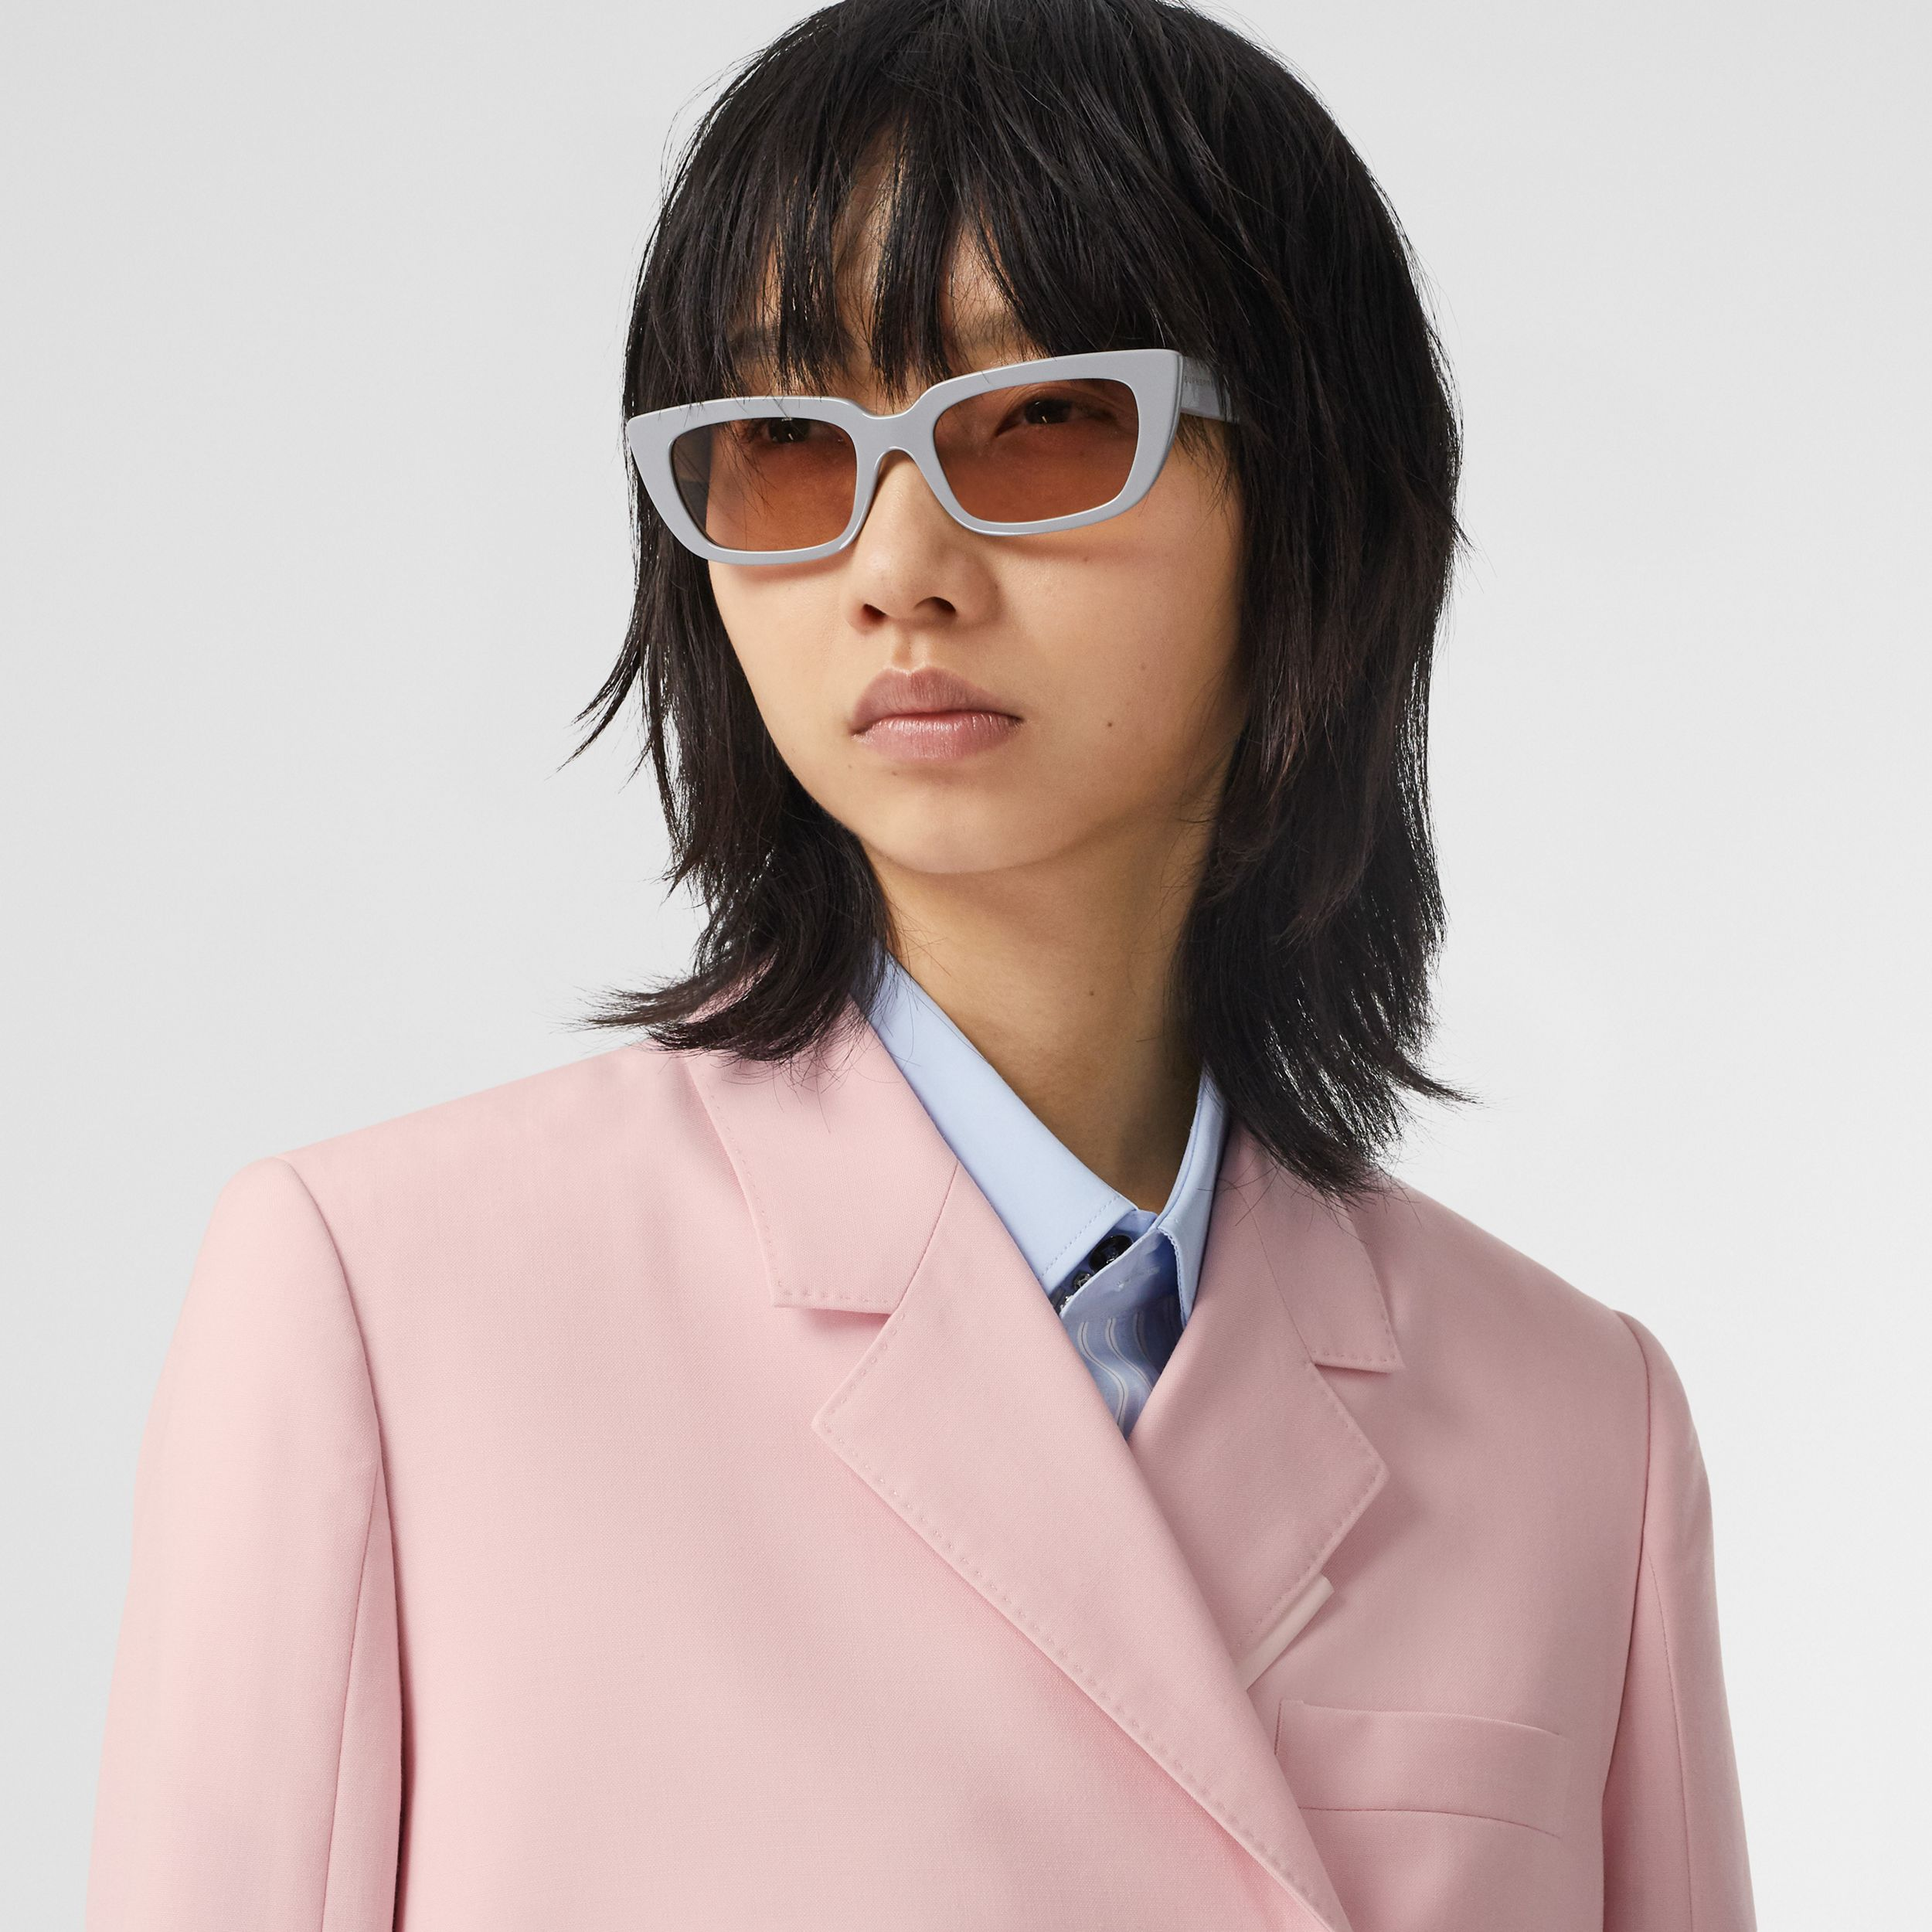 Tumbled Wool Double-breasted Blazer in Soft Pink | Burberry - 2